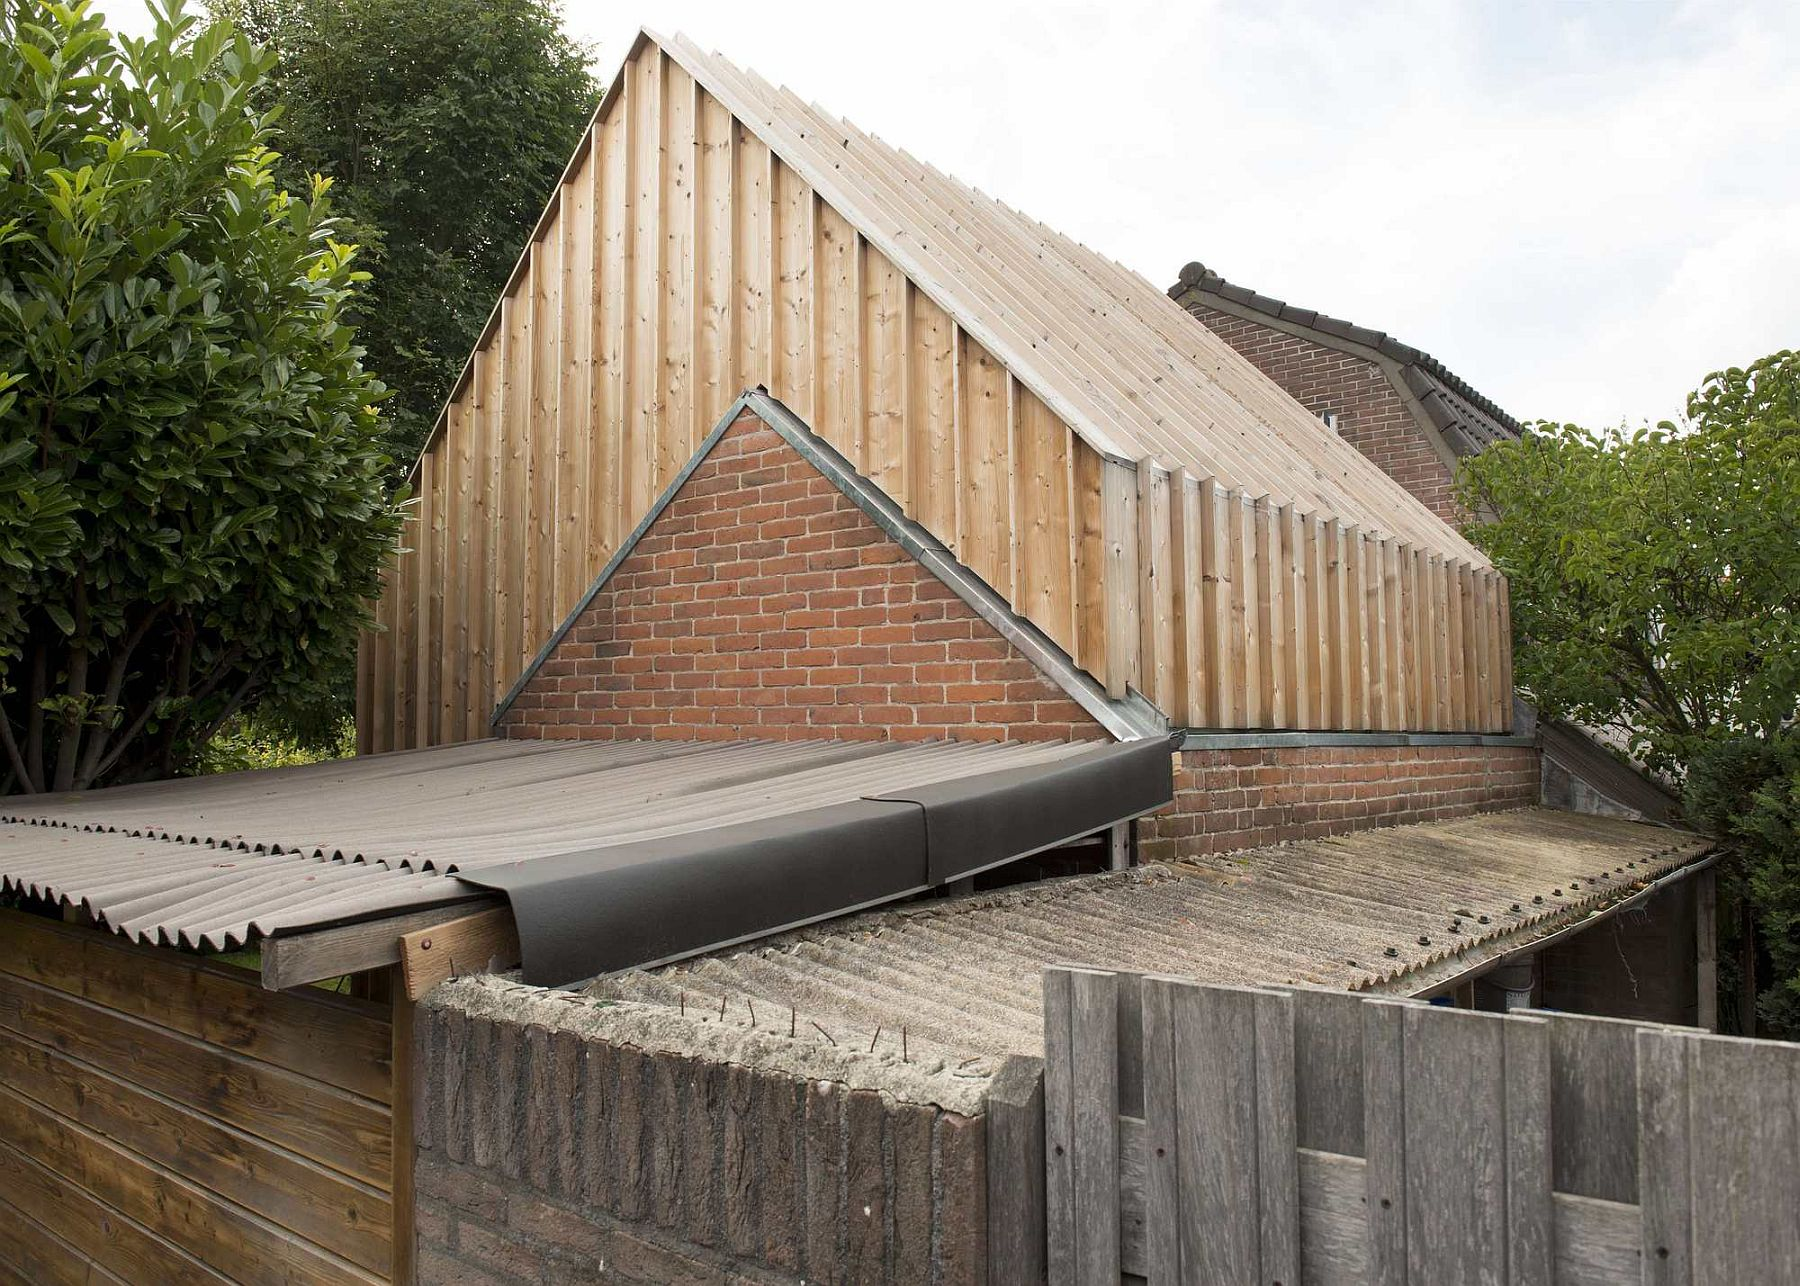 Original brick walls of the old shed are combined with new wooden facade